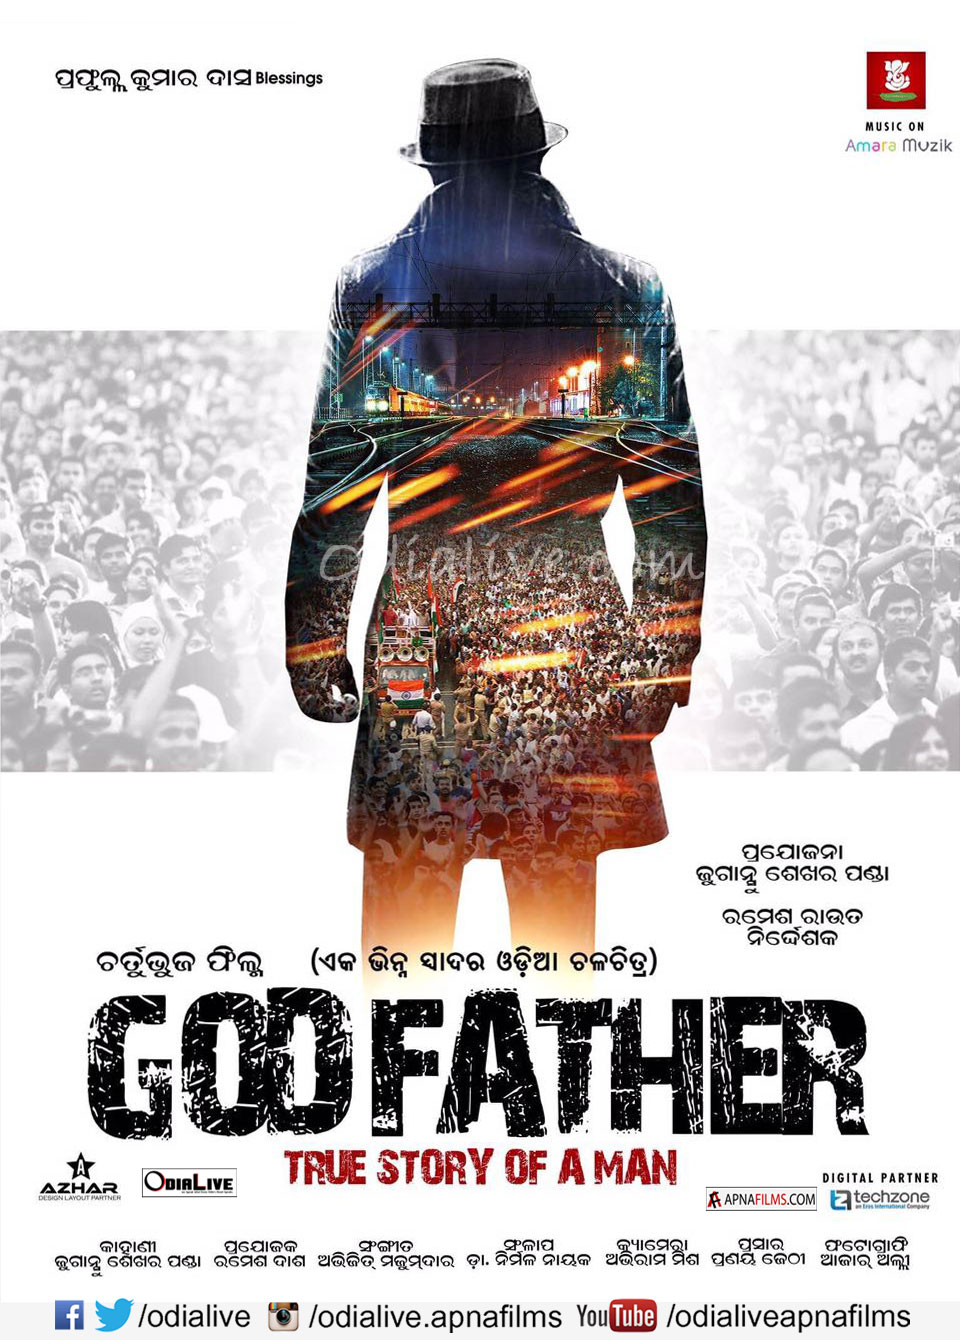 Watch God Father Odia Film trailer 5